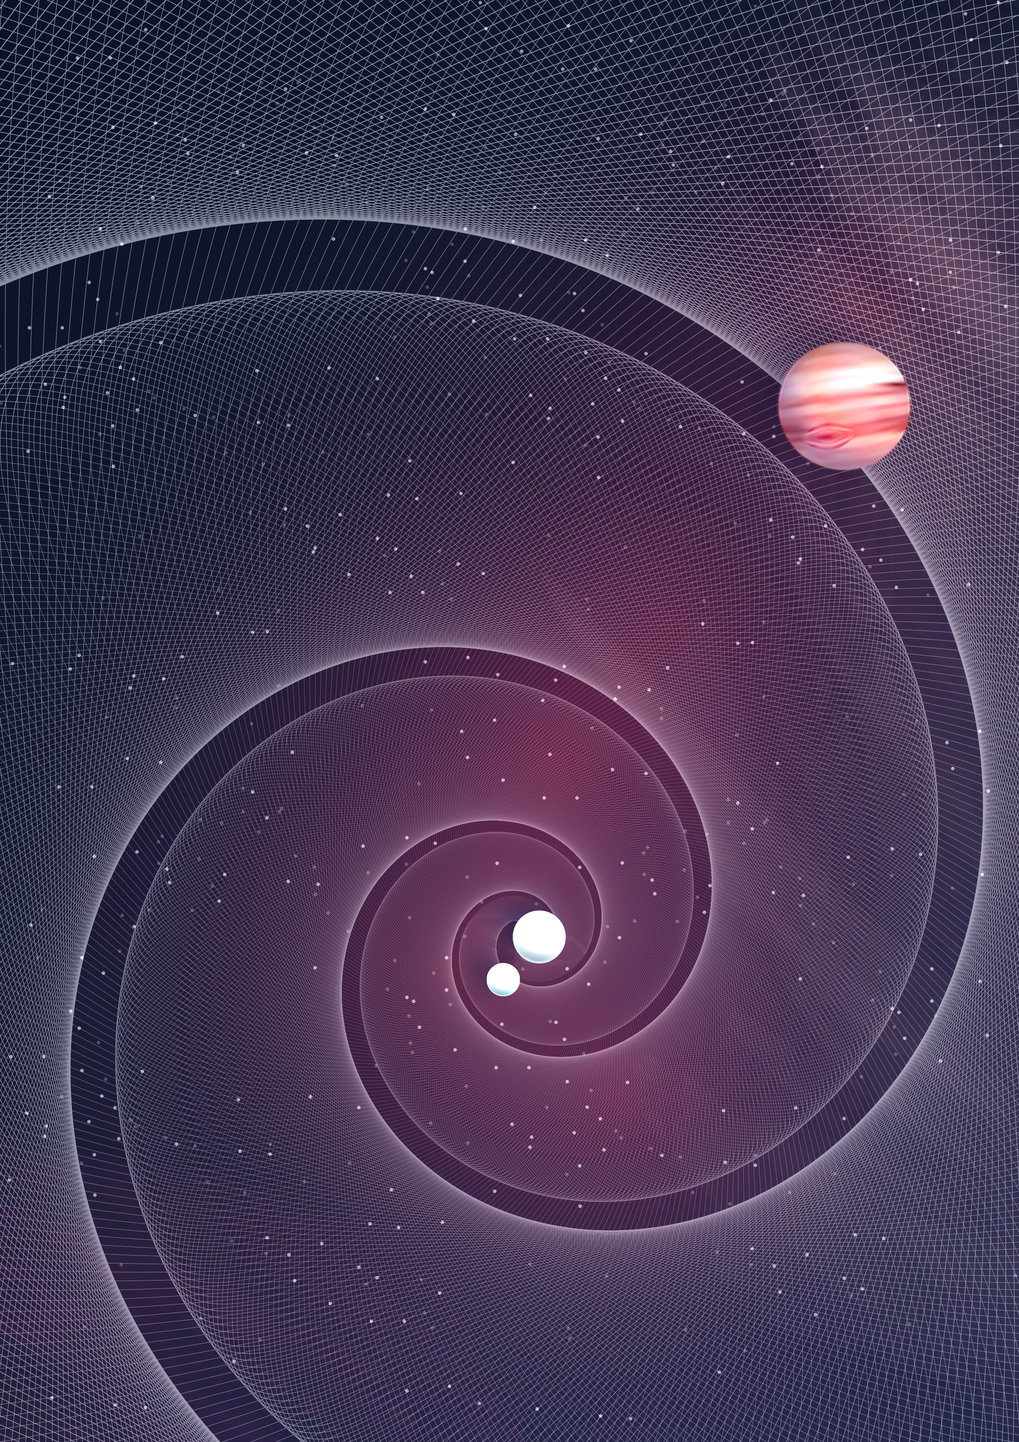 <p>Discovering exoplanets with gravitational waves</p>